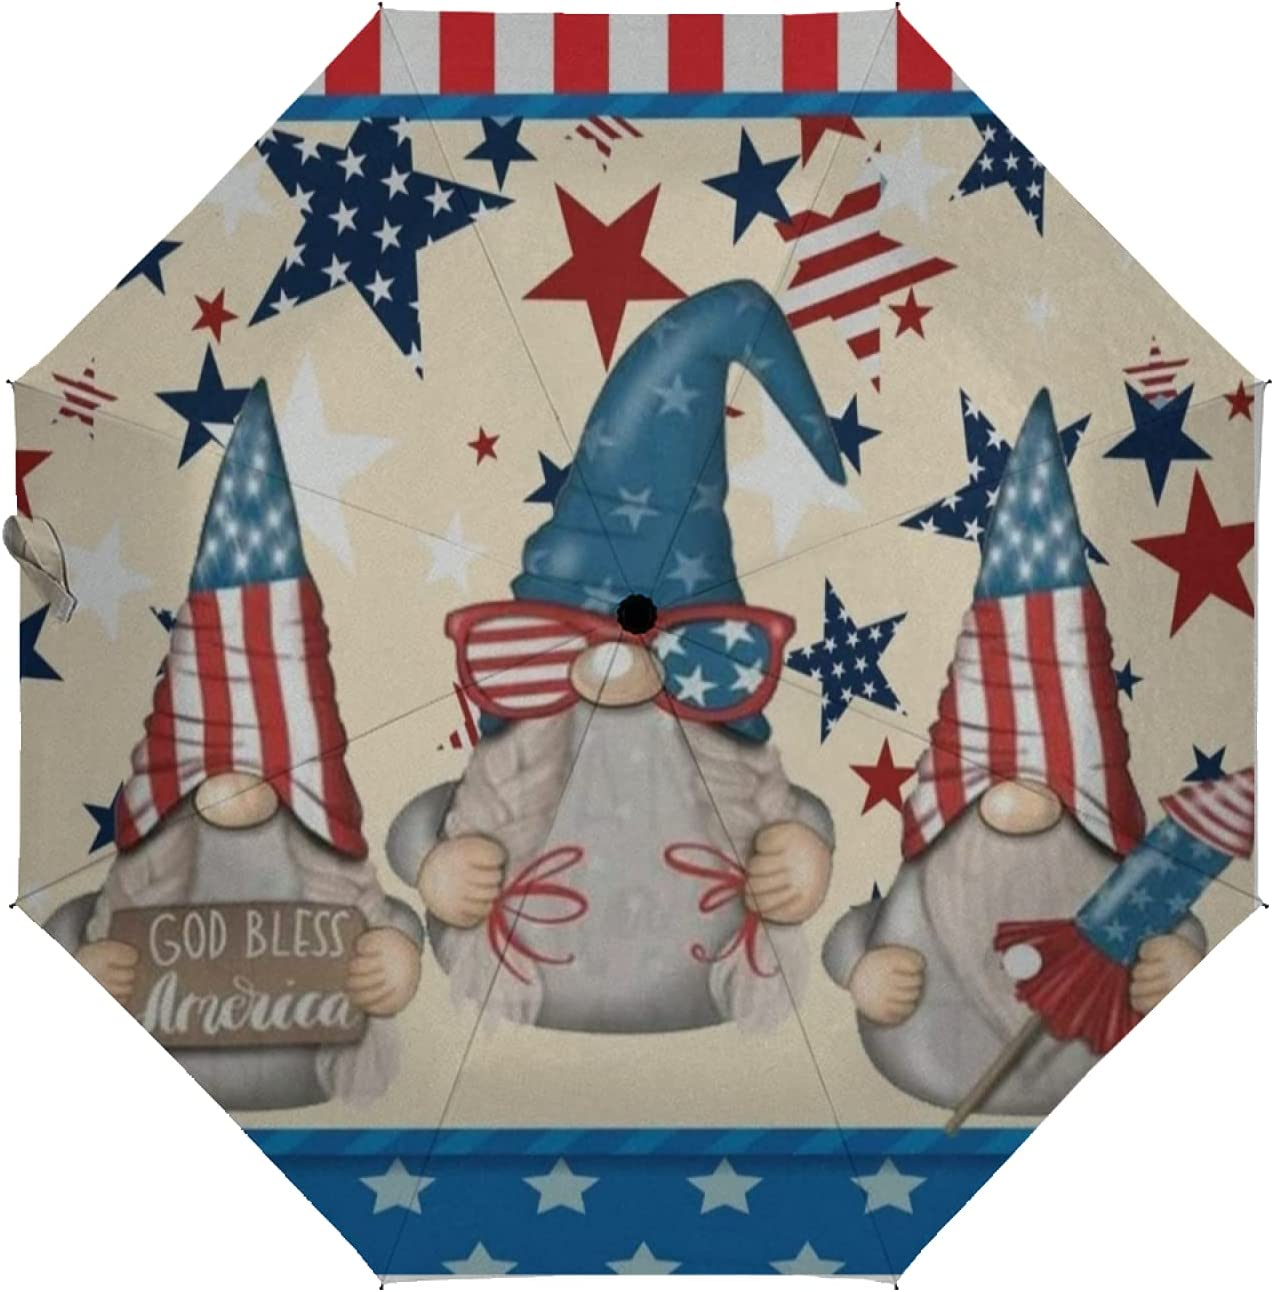 Golf Some reservation Umbrella American Washington Mall Memorial Eagle Independence Day Firework